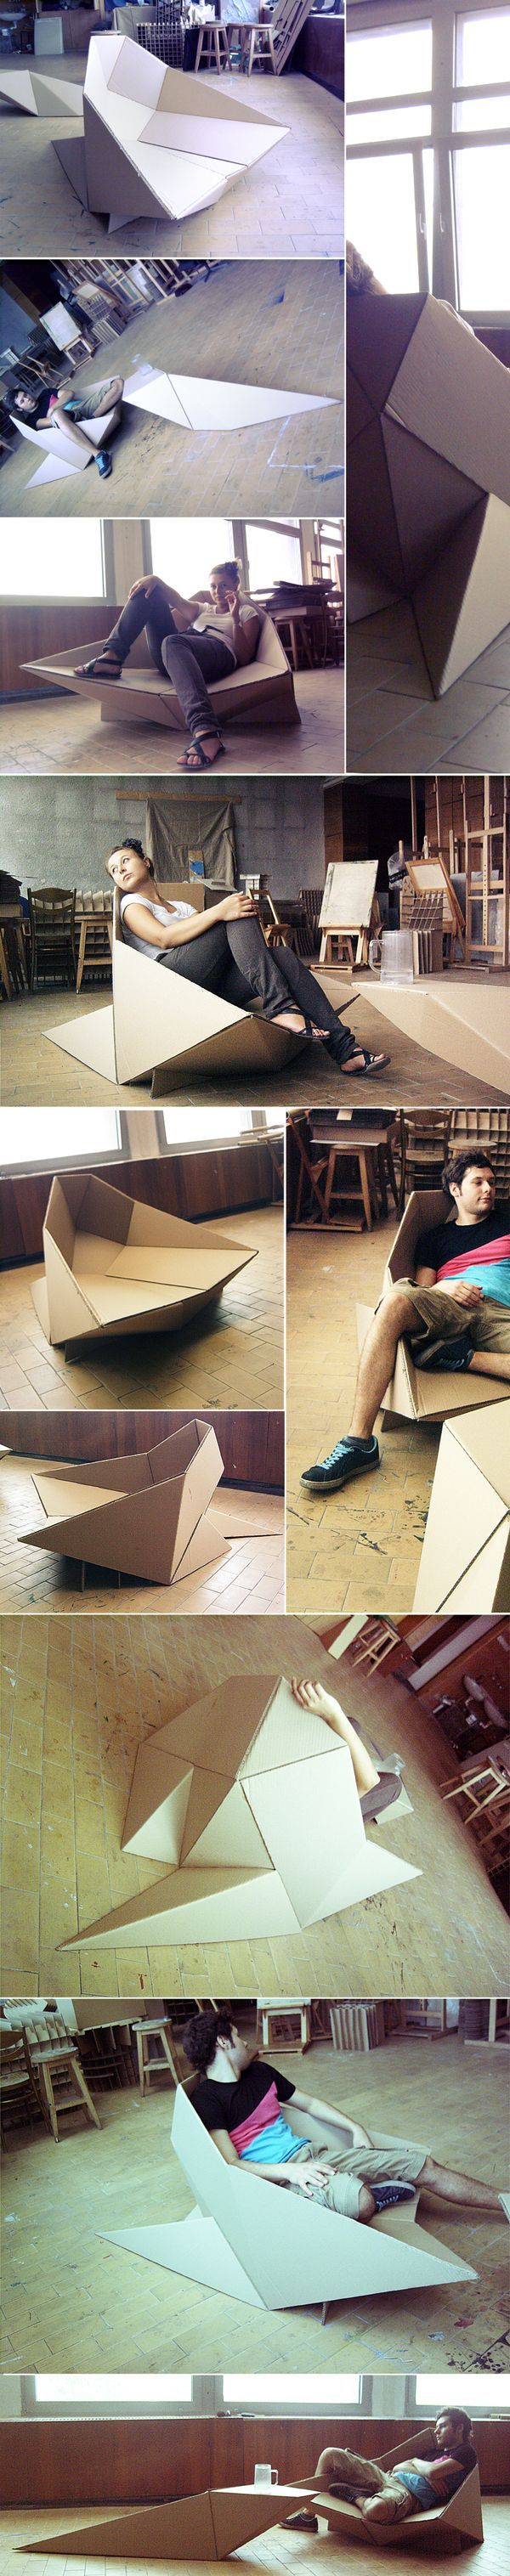 Cardboard furniture techniques how to achieve strength growing up - Cardboard Chair Such An Excellent Idea For An Exhibition Of Some Sort I Have